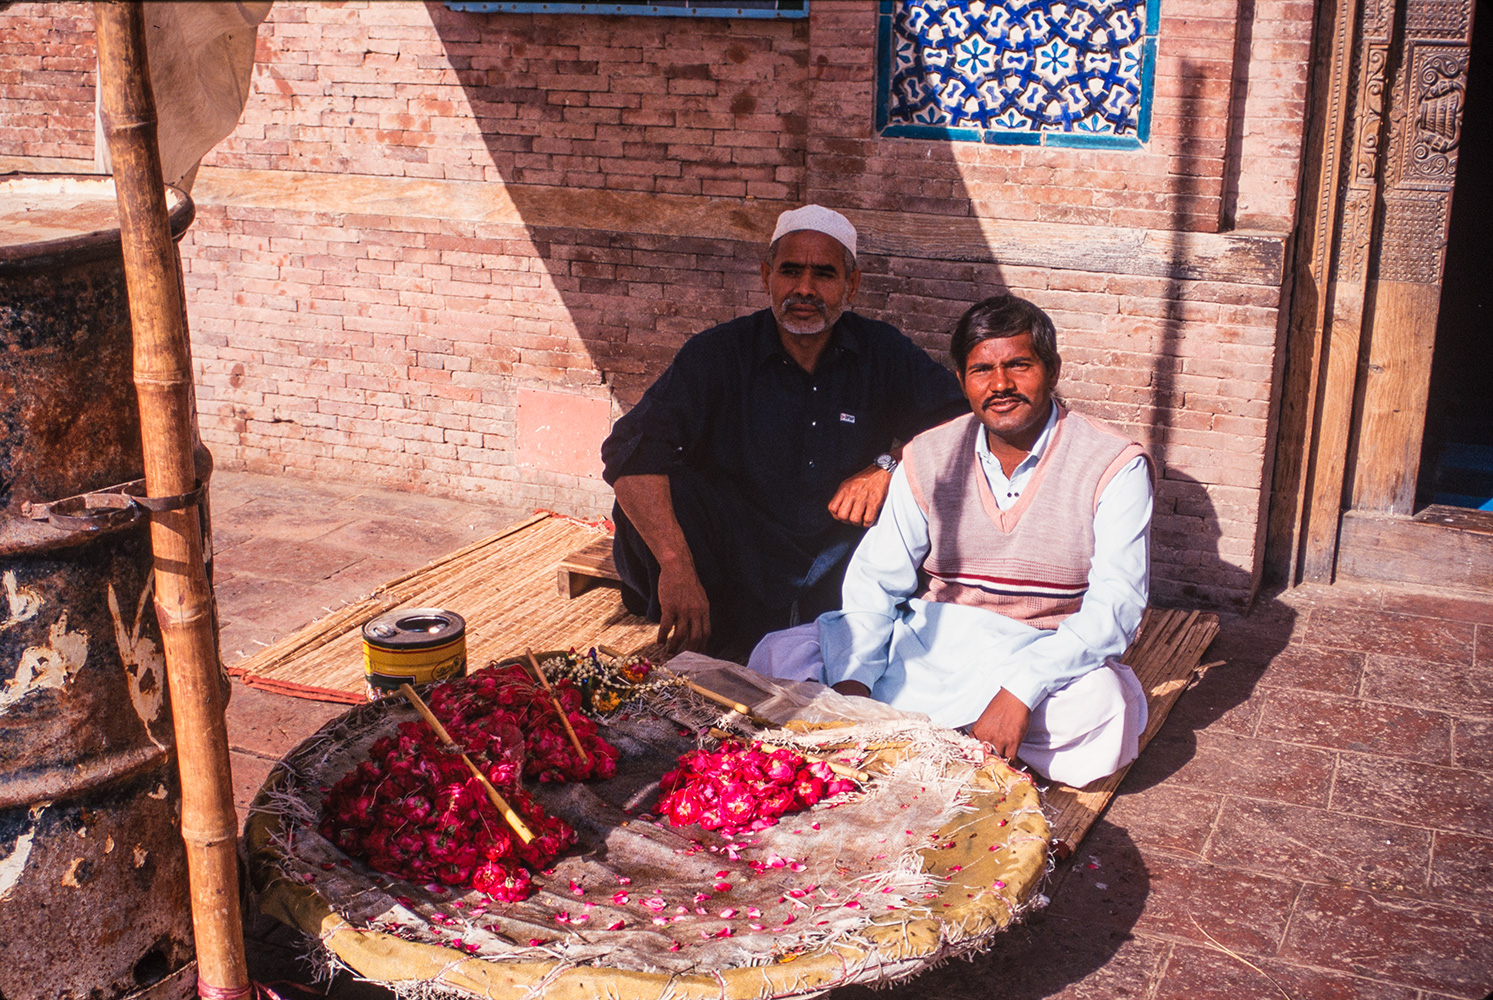 Flower sellers at the mausoleum of Sufi saint Shah Rukn-i-'AlamBronica ETRS, 75mm, Fuji Velvia